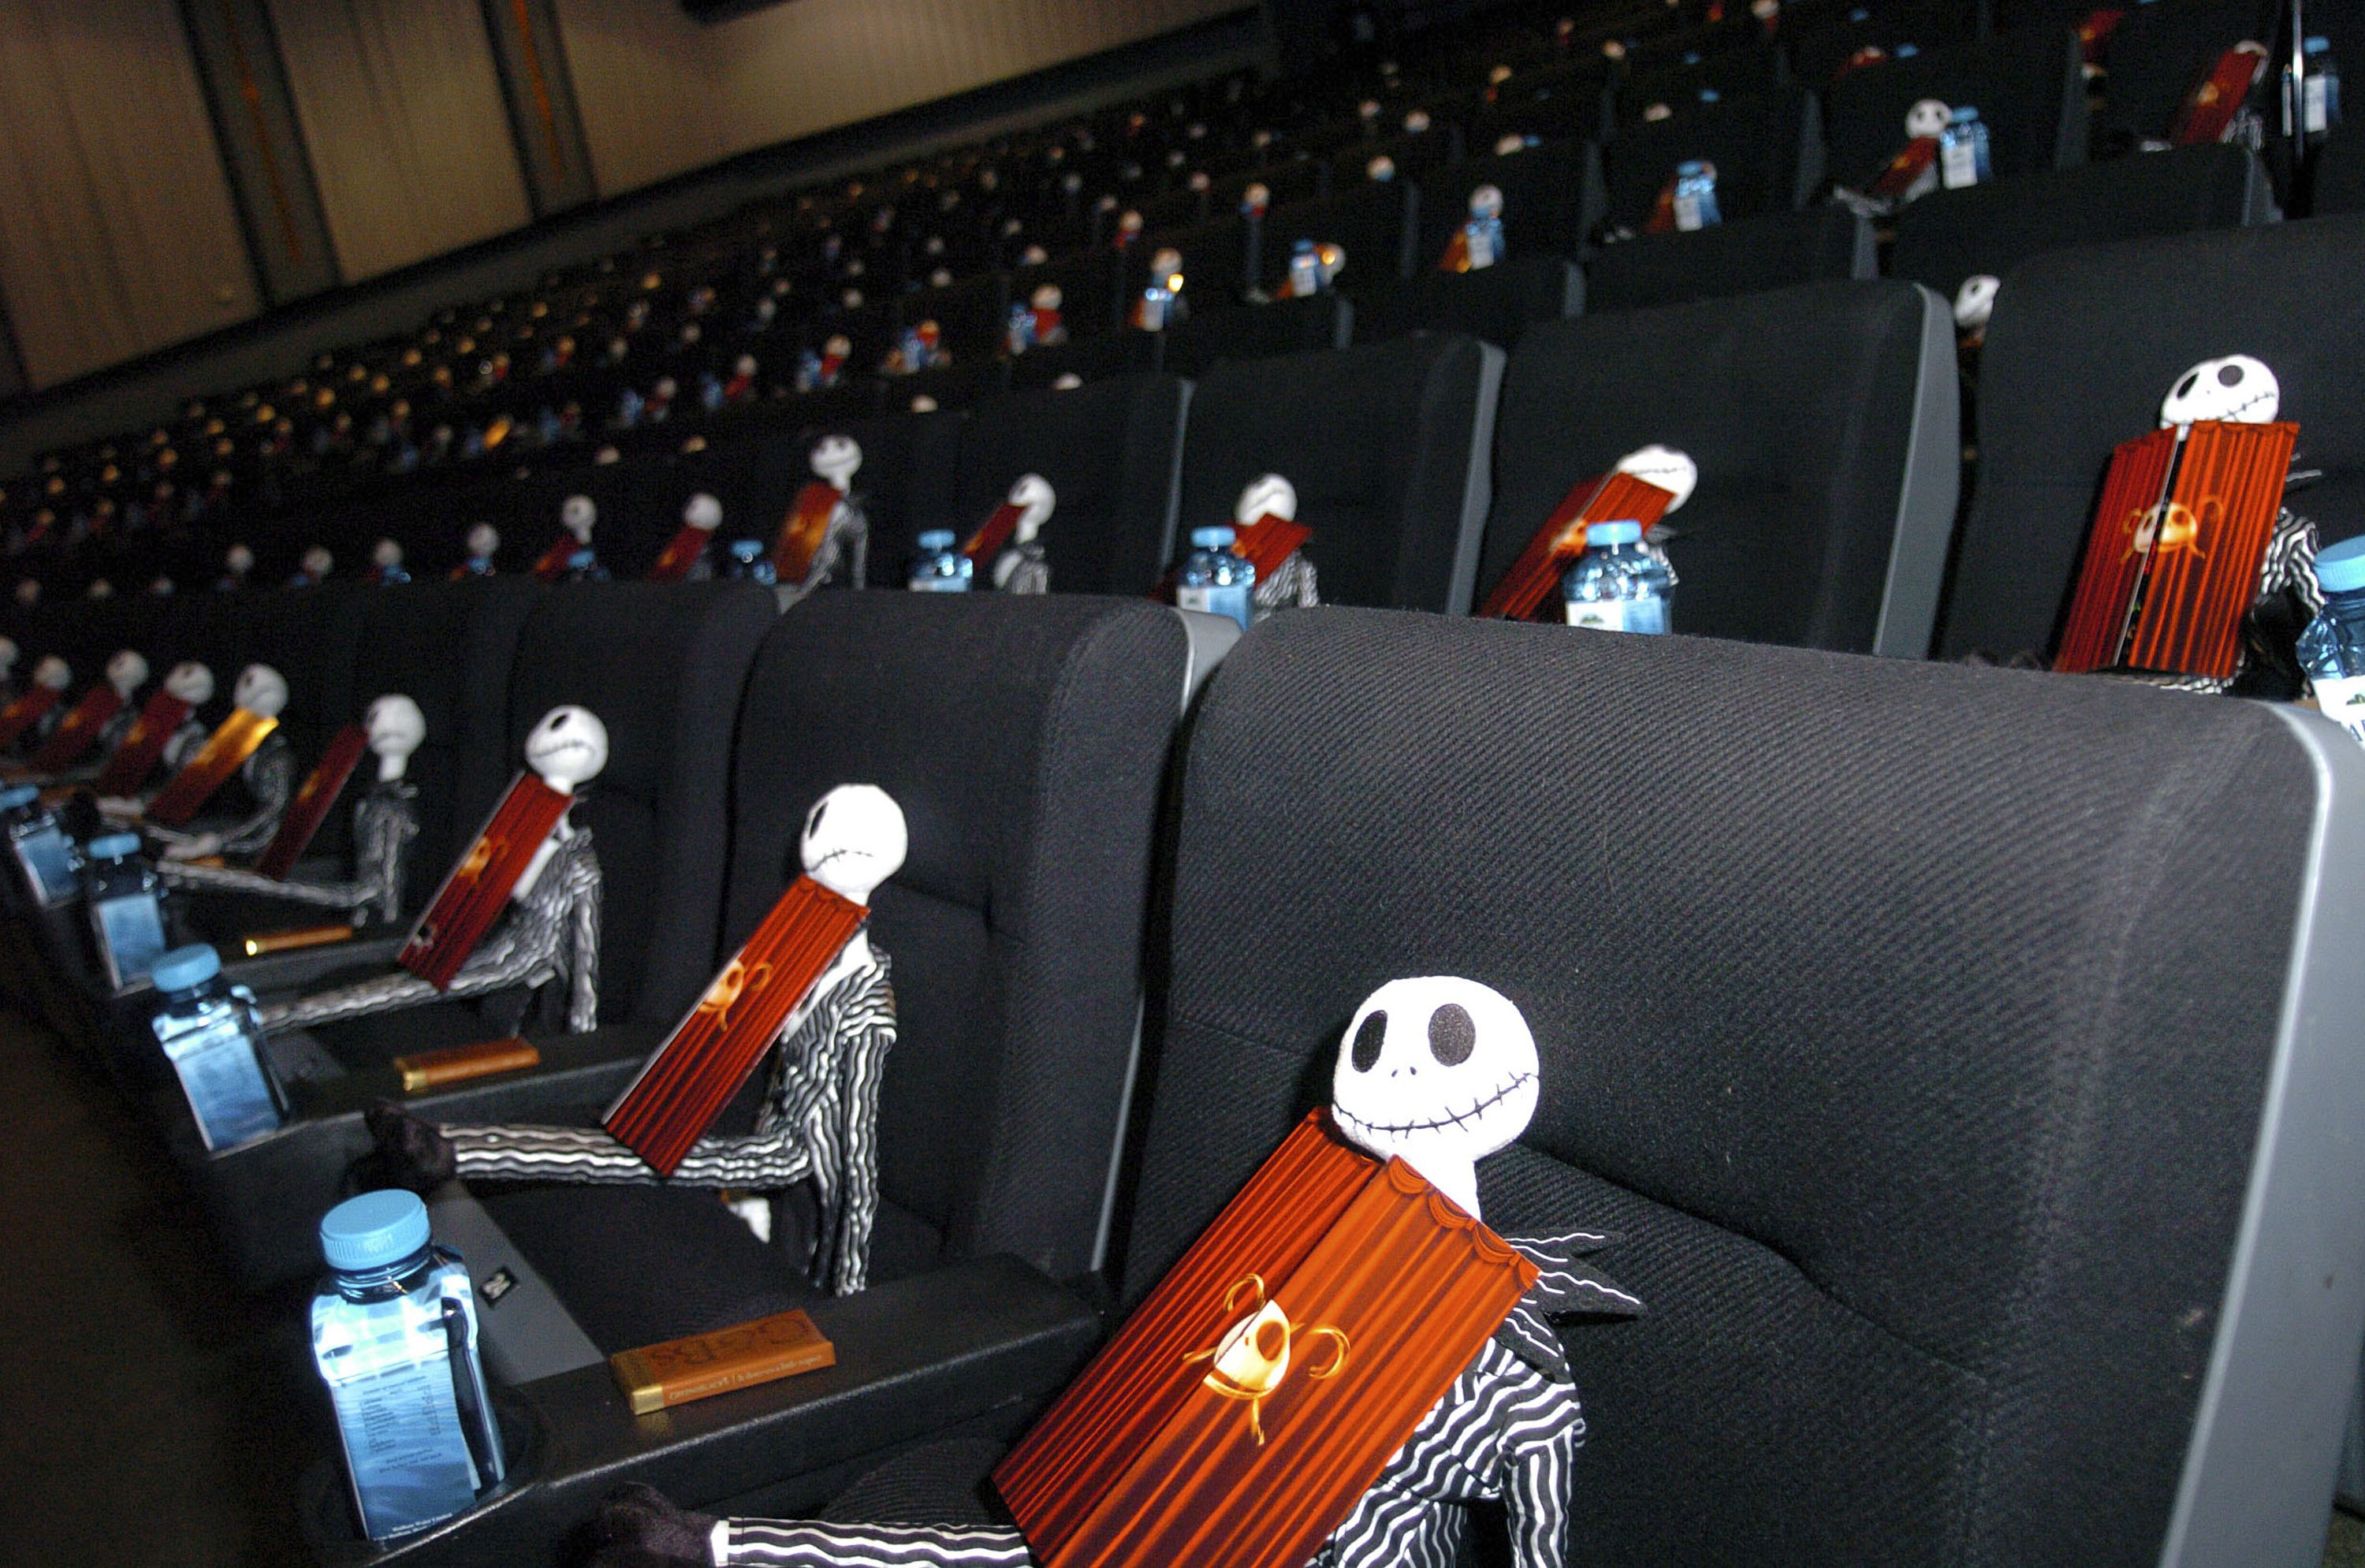 Where to Watch 'The Nightmare Before Christmas' This Holiday ...